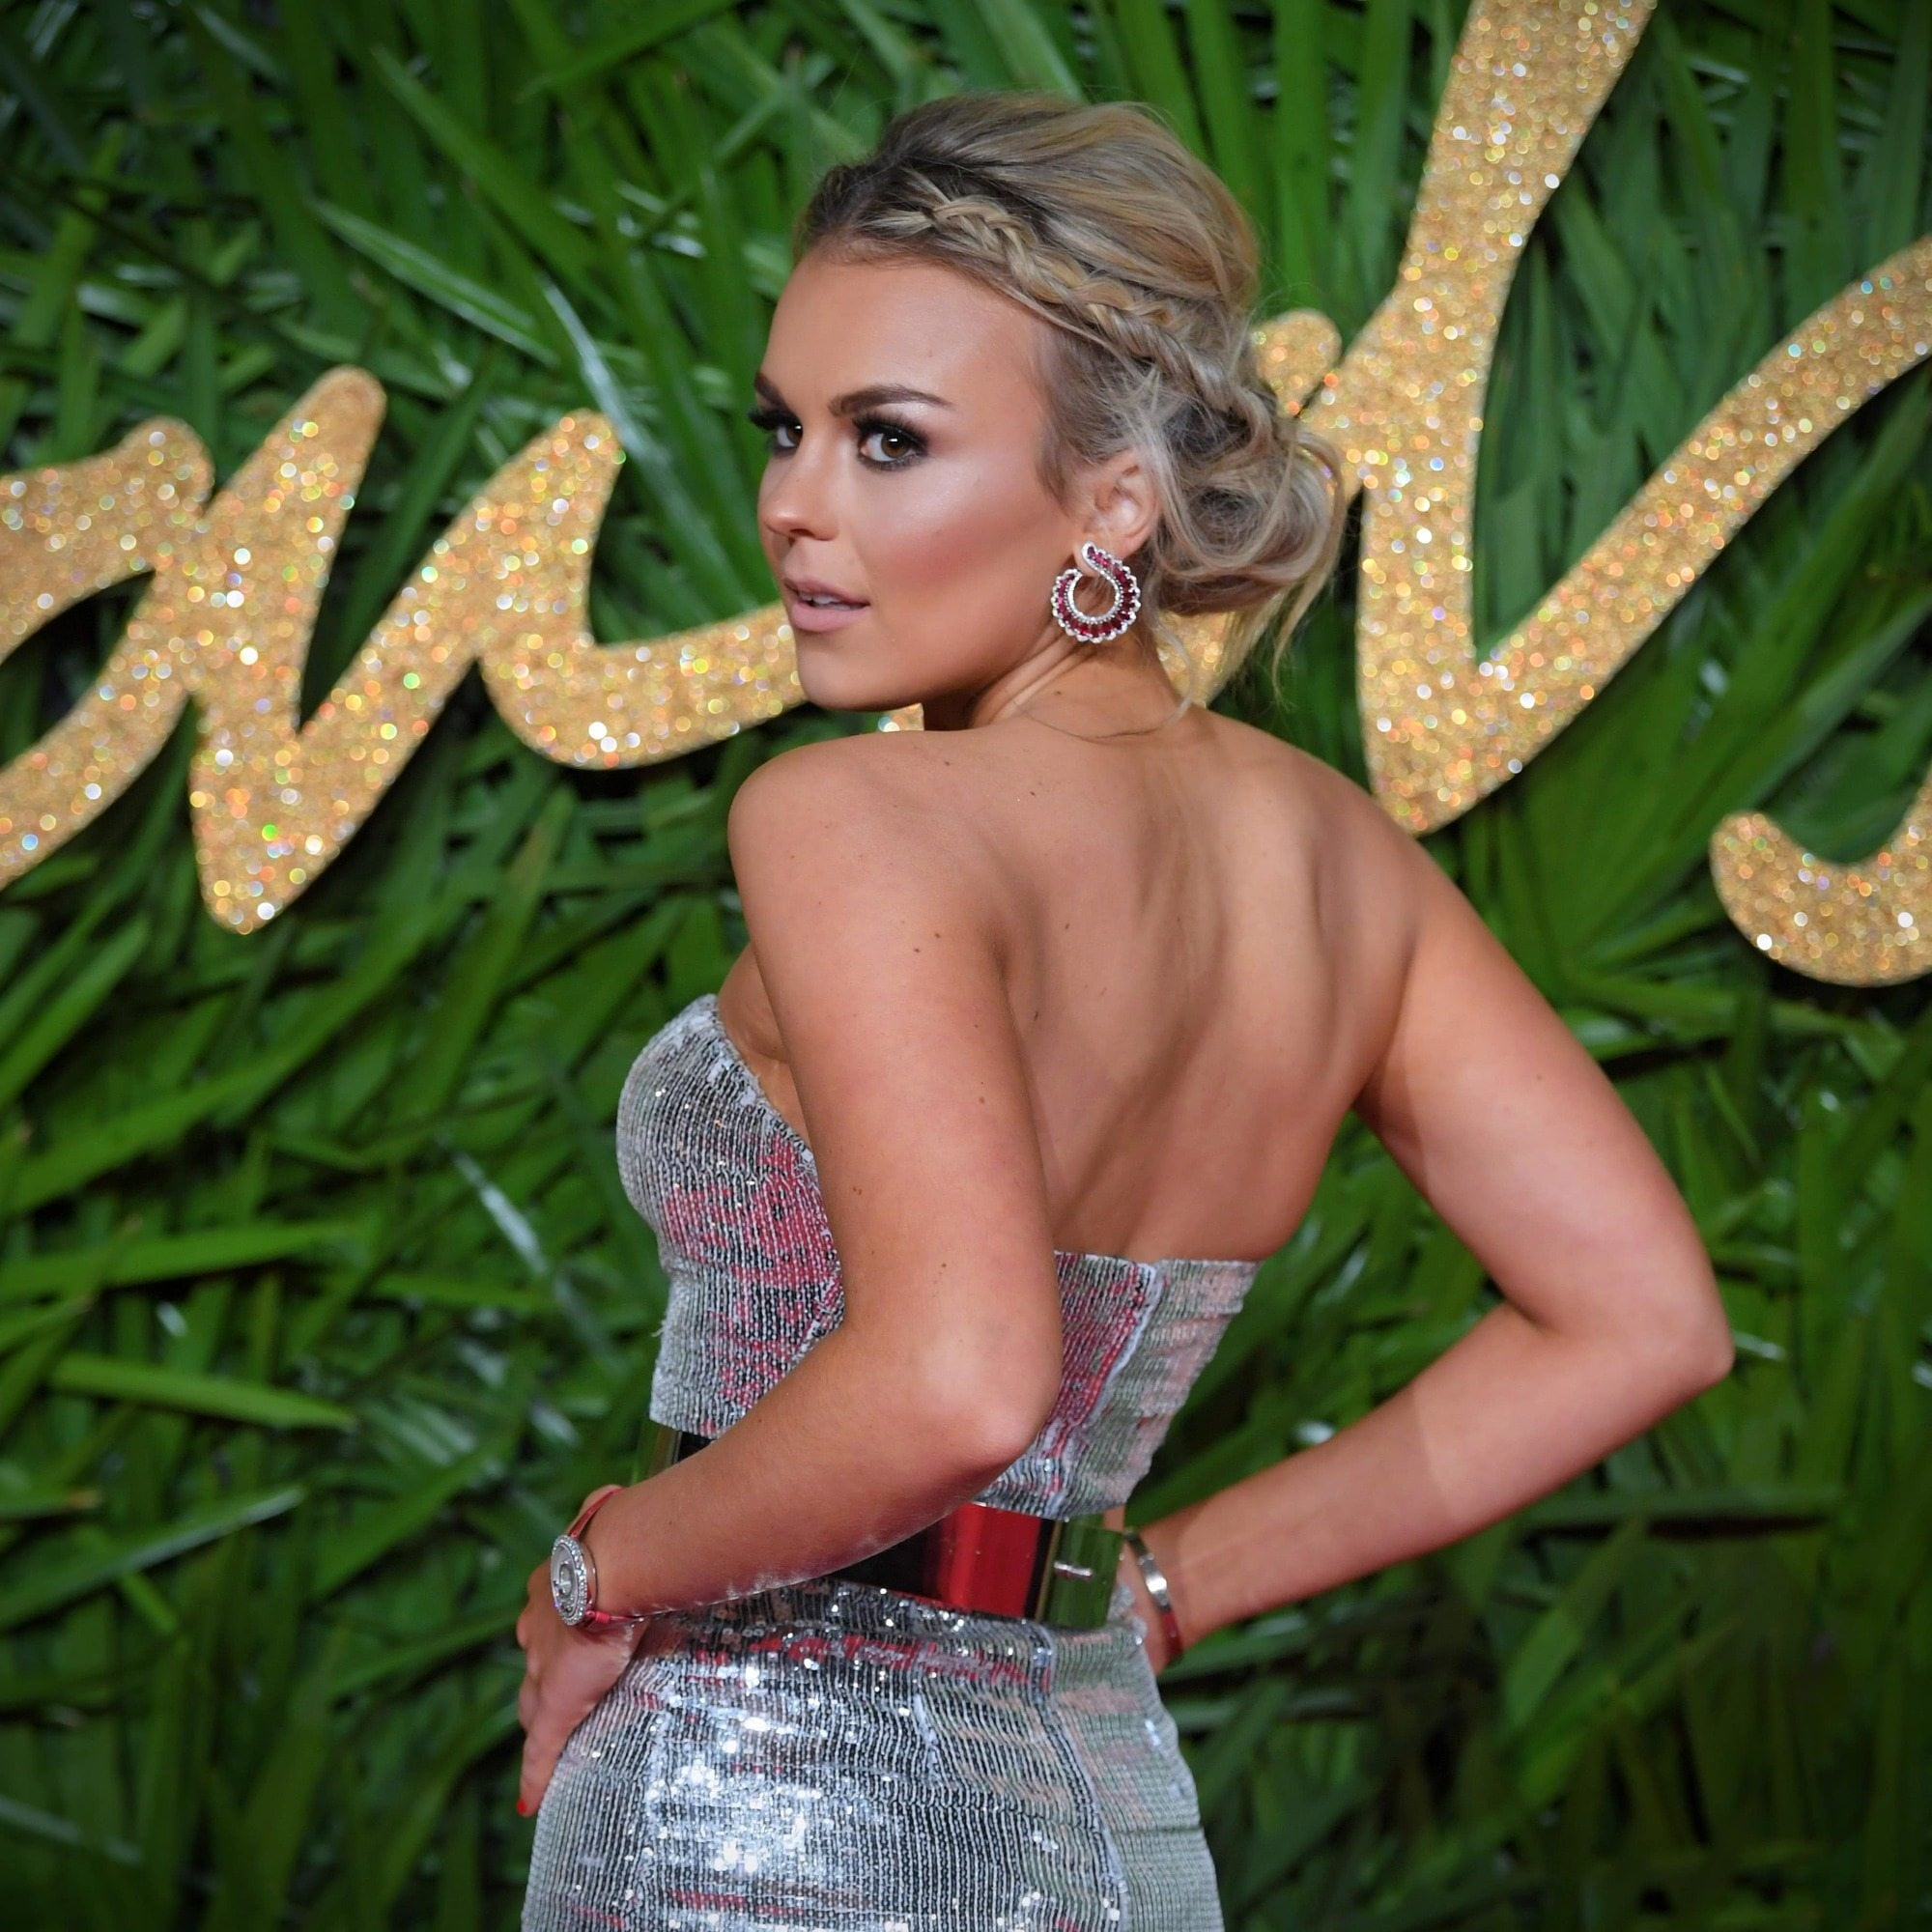 singer tallia storm at the british fashion awards in a sparkly silver dress with her hair in a plaited updo